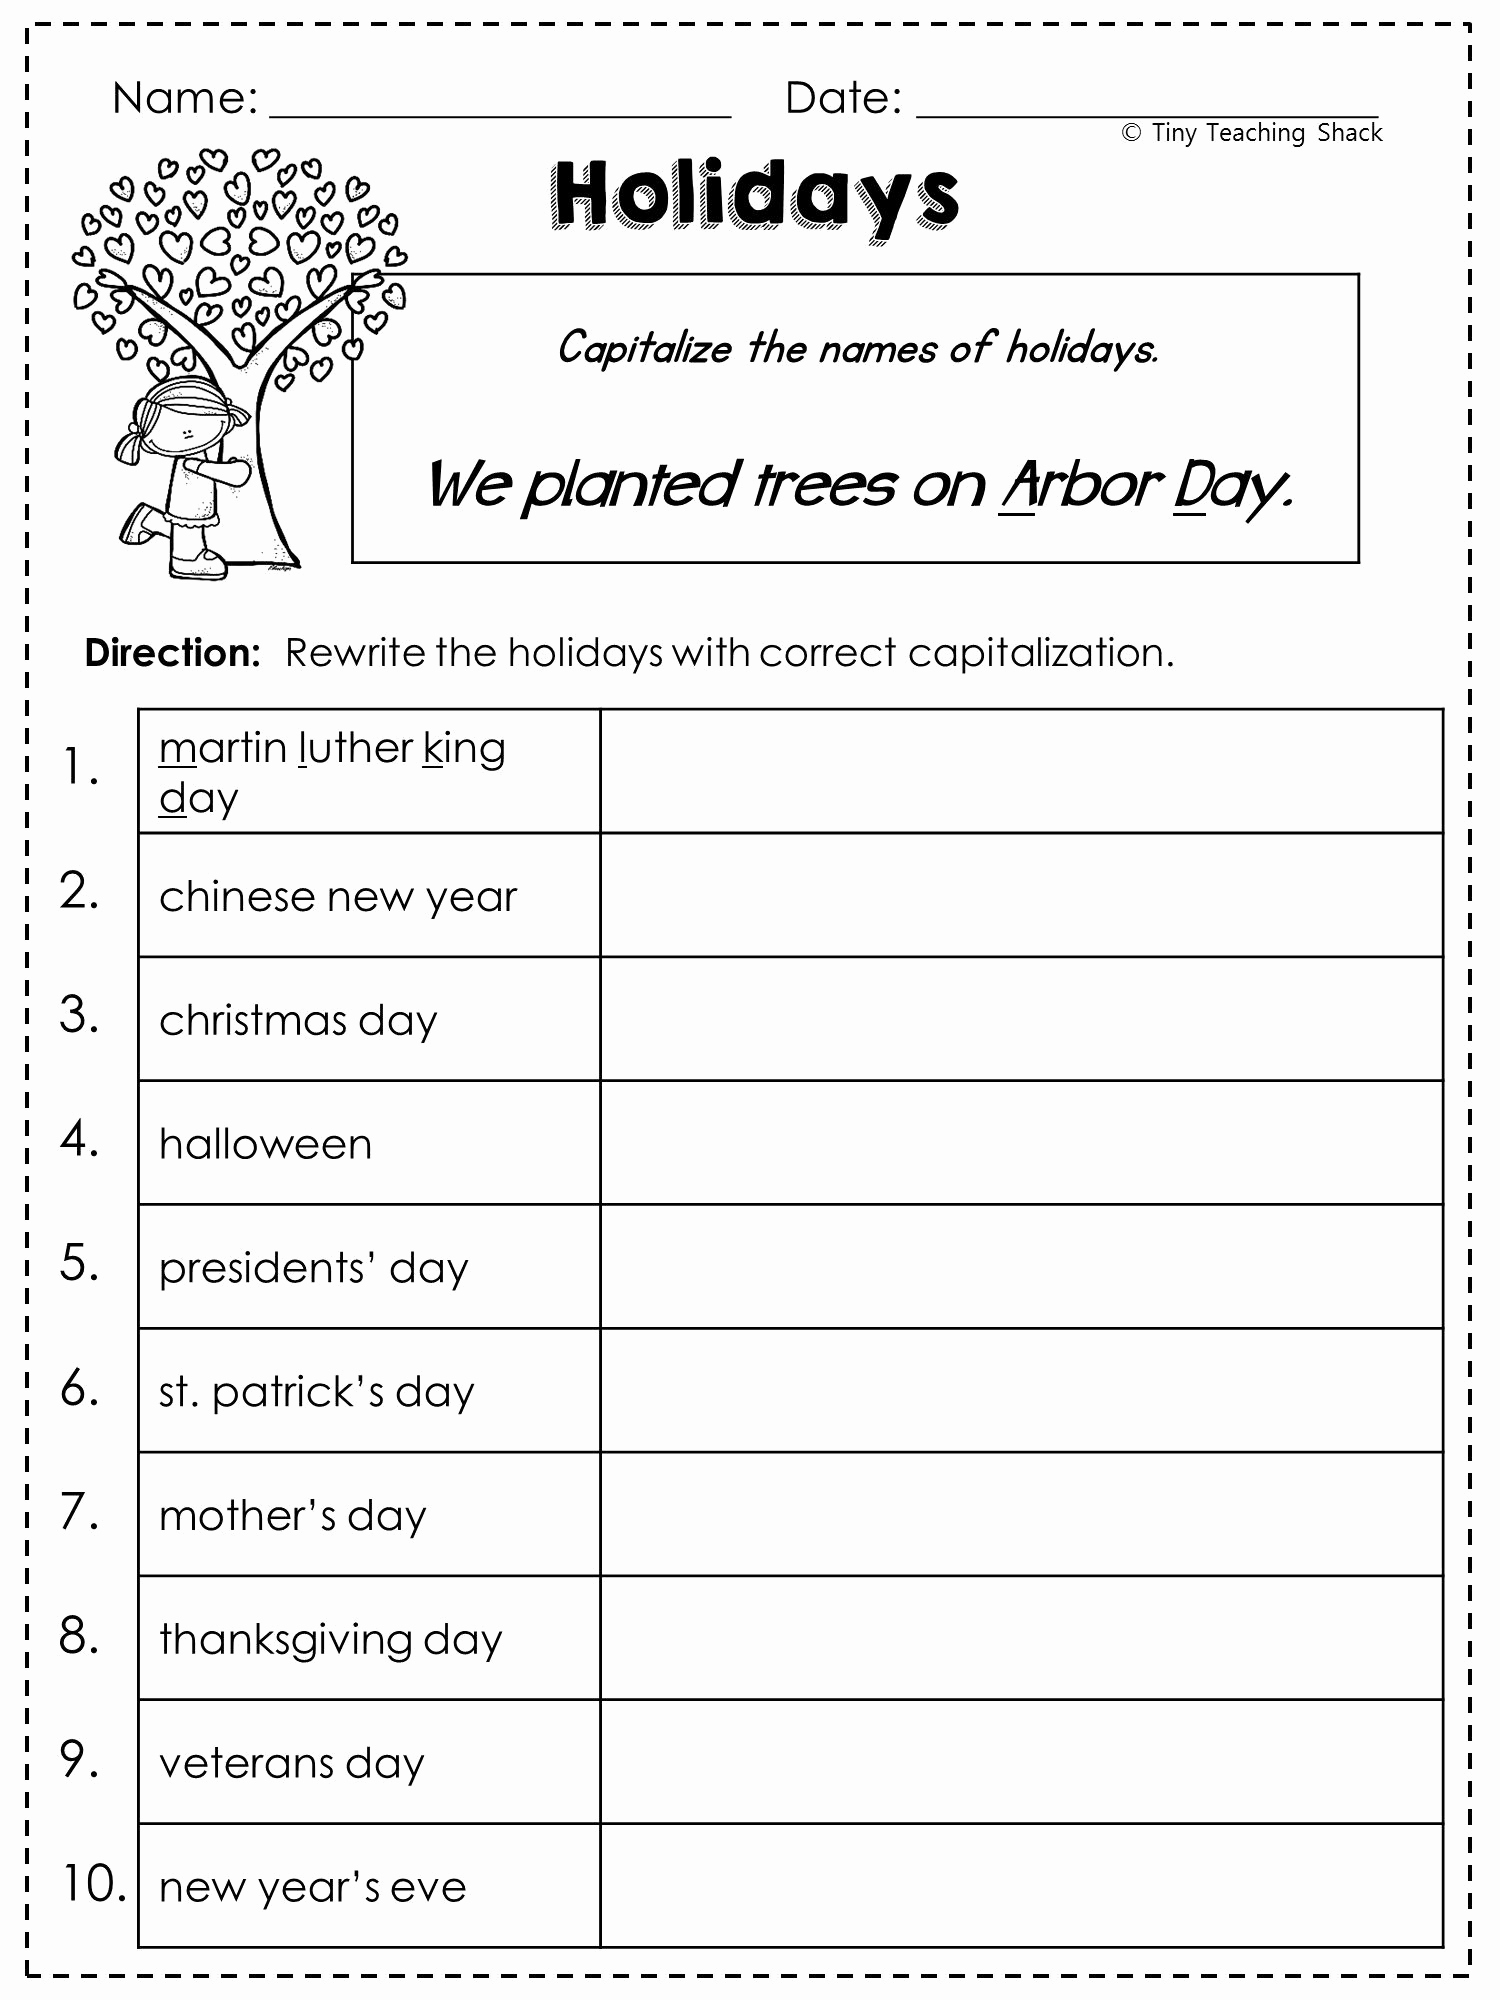 2nd Grade Grammar Worksheets Free Luxury Free Printable 2nd Grade Language Arts Worksheets